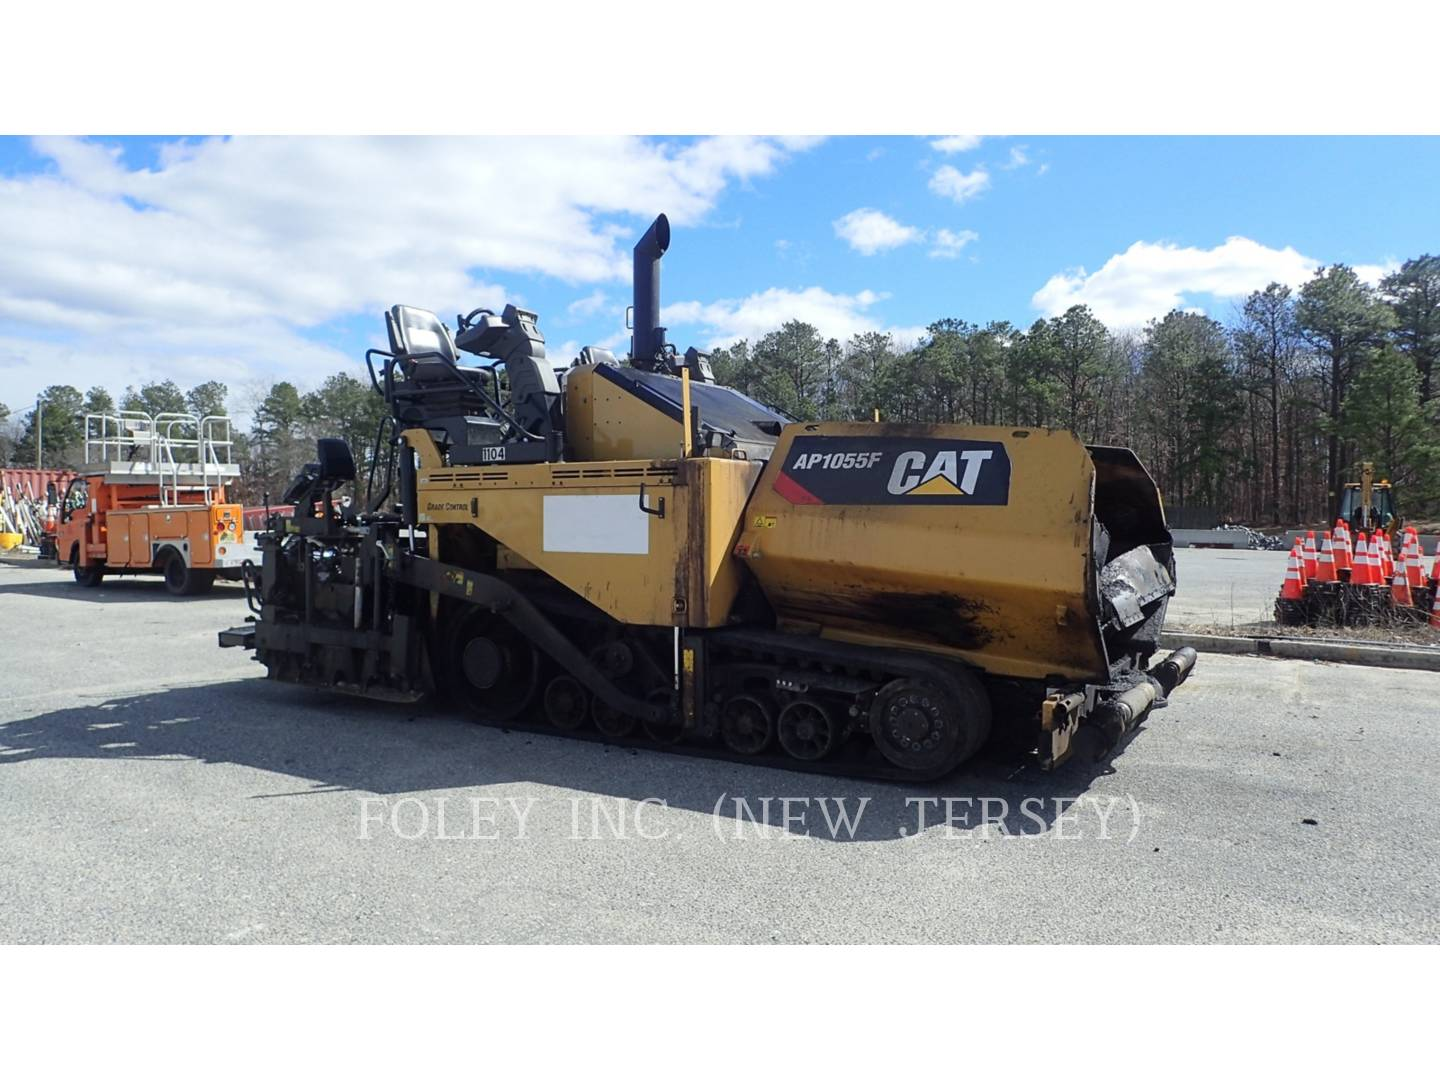 Used 2015 Caterpillar AP1055F for Sale in NJ, PA, DE and